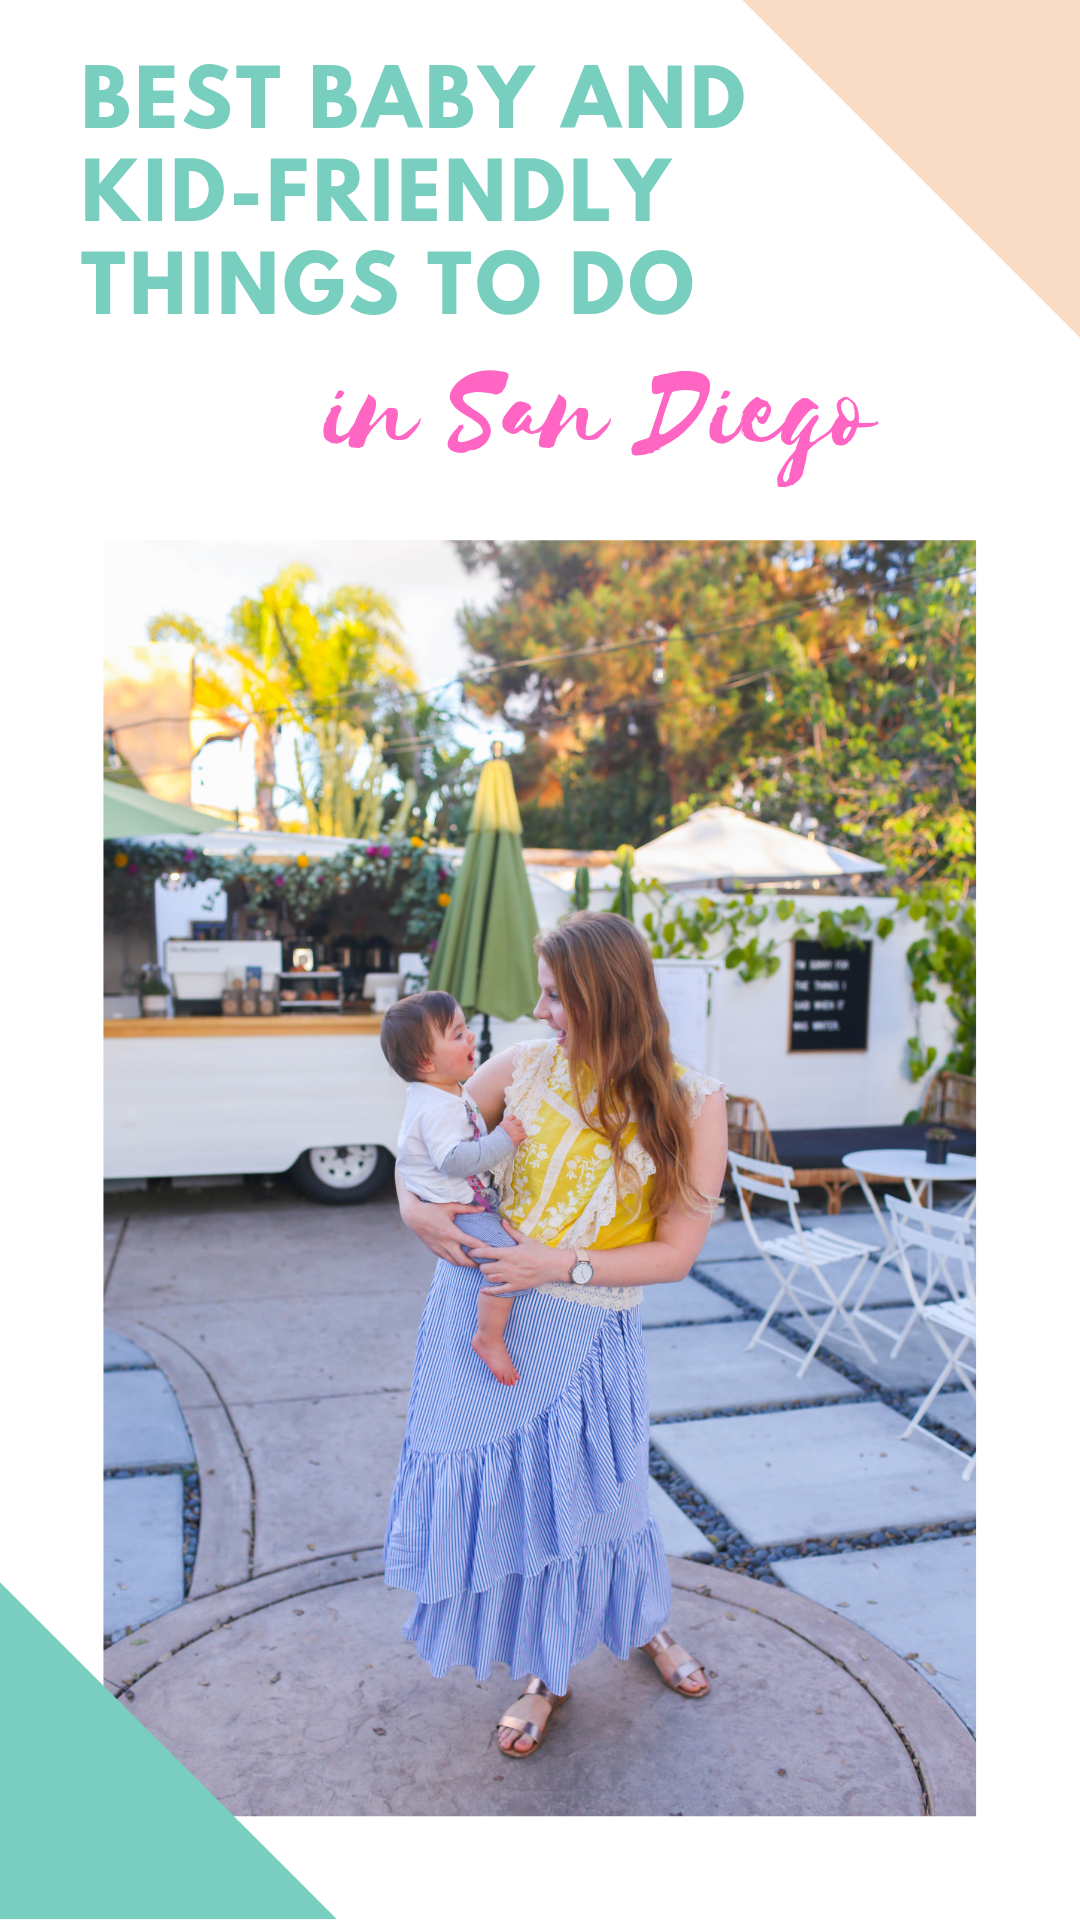 Best Baby and Kid-Friendly Things to Do in San Diego